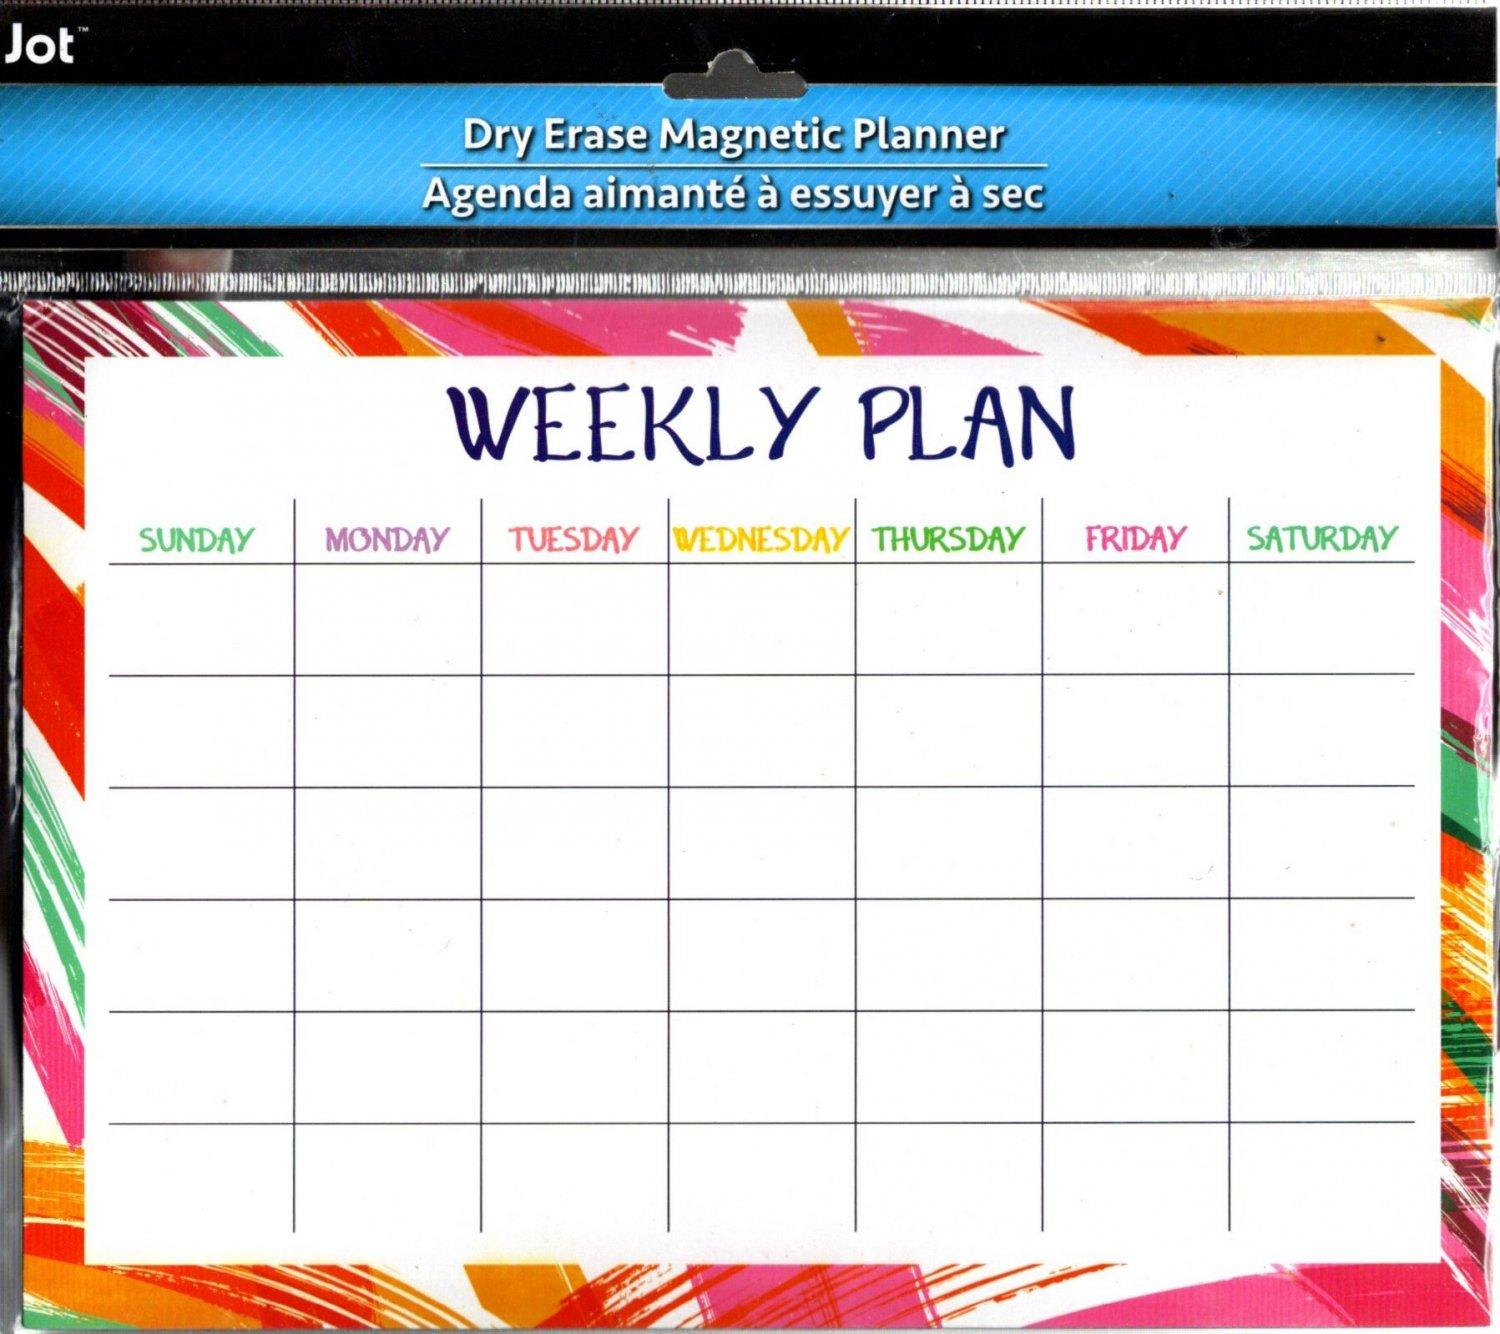 Magnetic Dry Erase Calendar - White Board Planner for Refrigerator/School Lockers -  v10